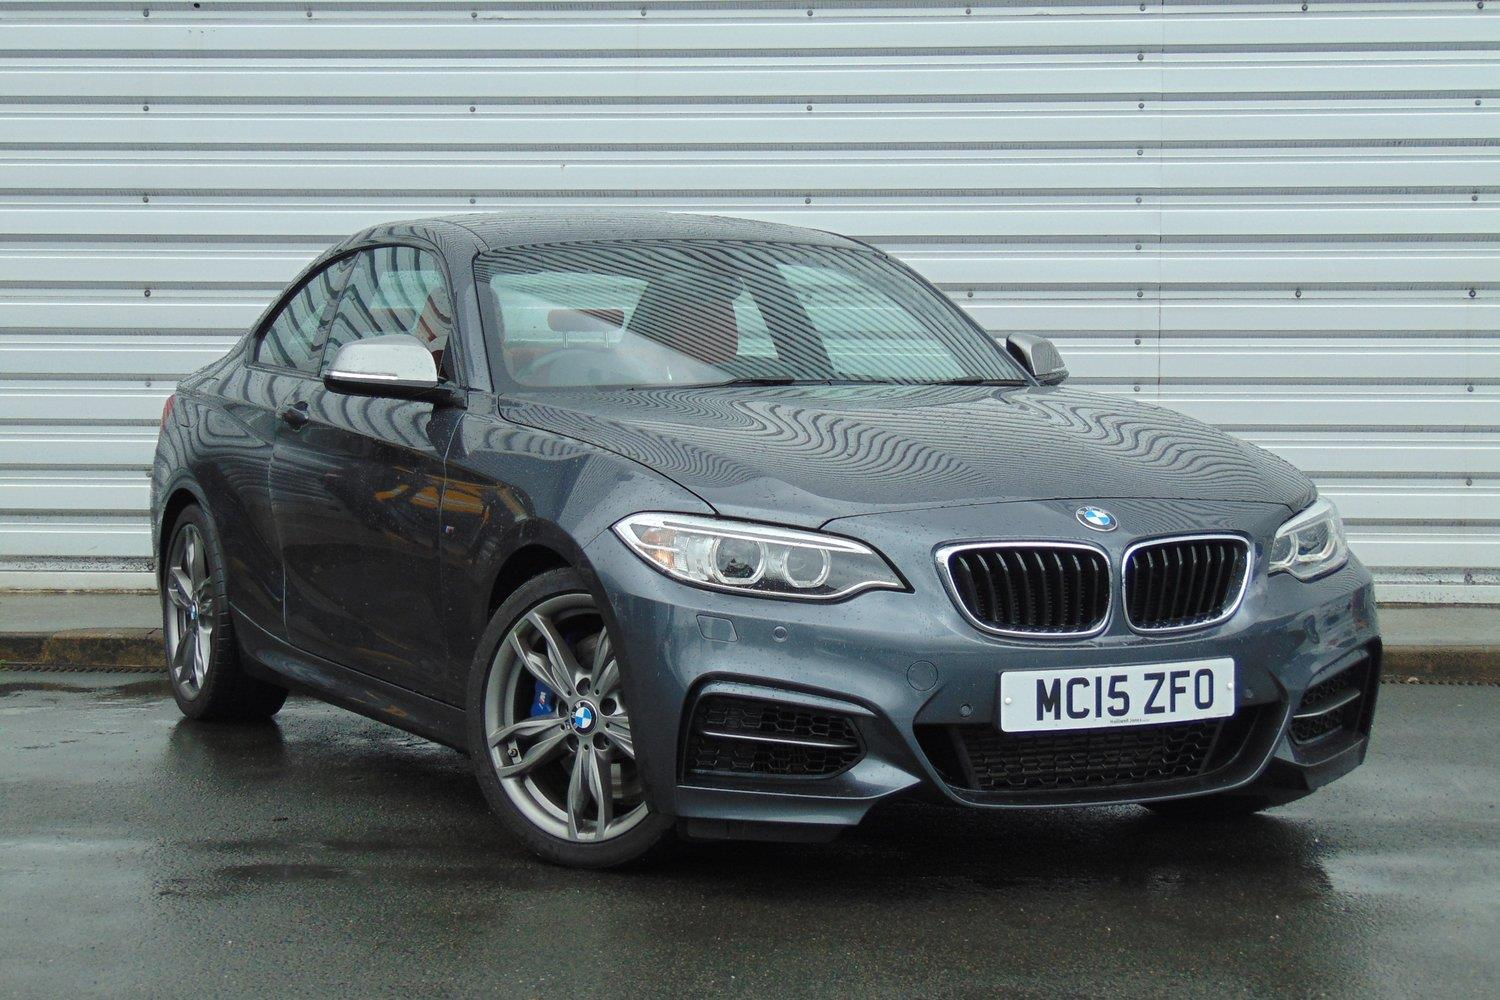 BMW 2 Series Coupé MC15ZFO - Image 10